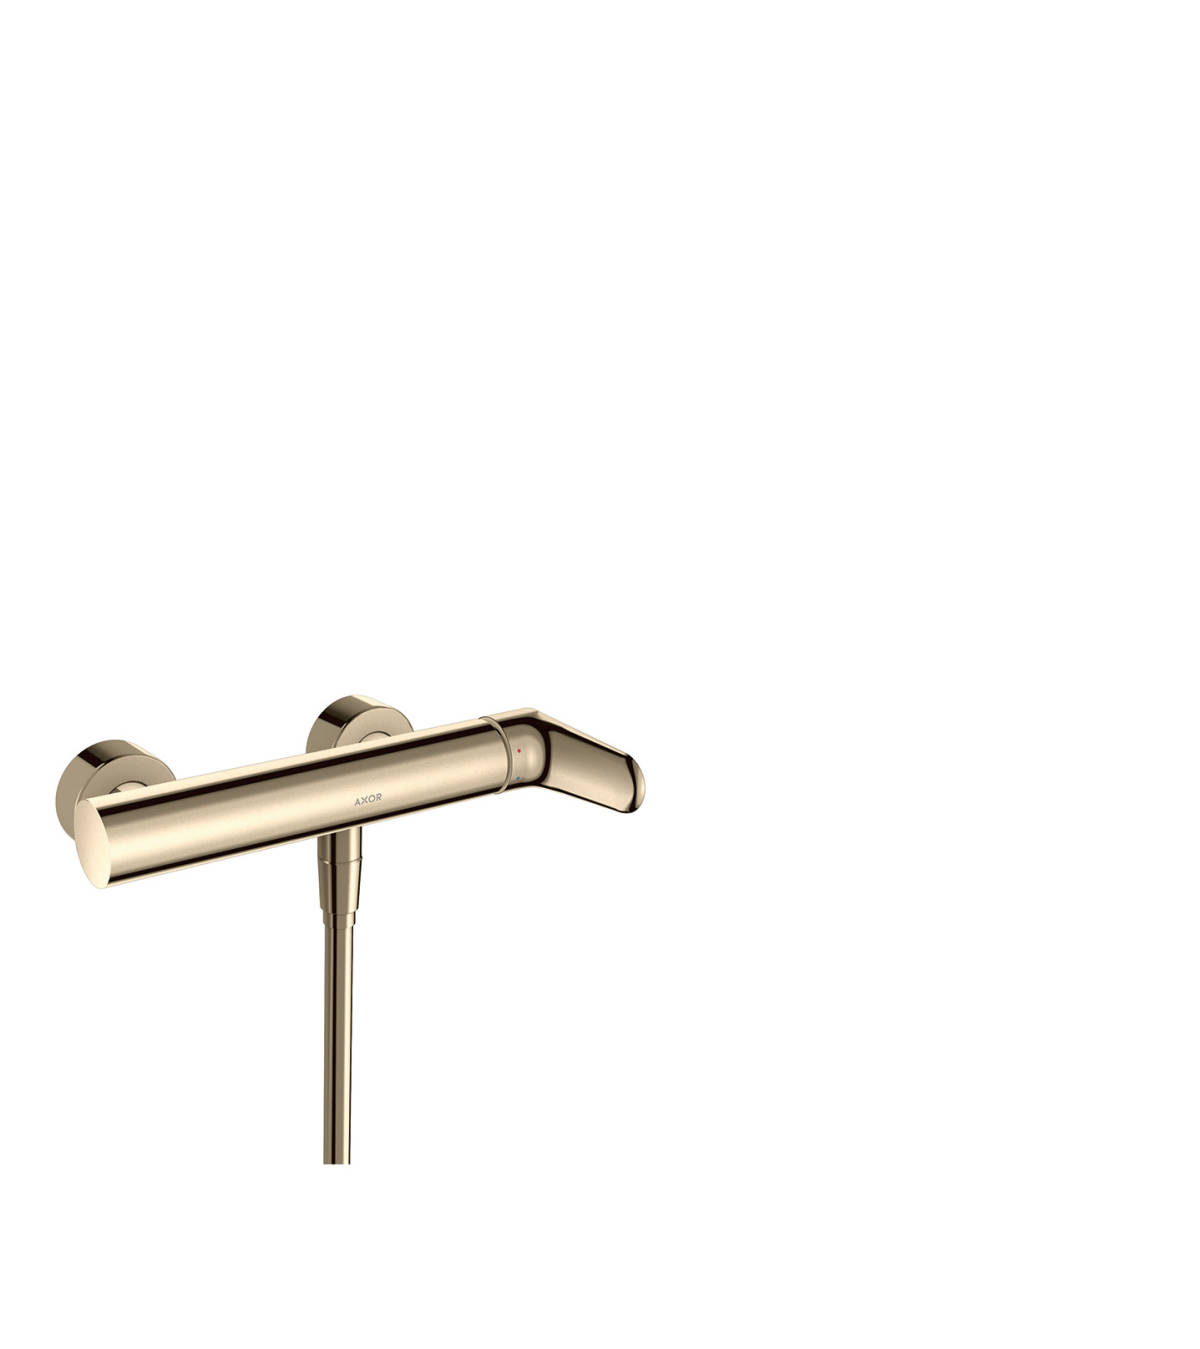 Single lever shower mixer for exposed installation, Polished Nickel, 34620830